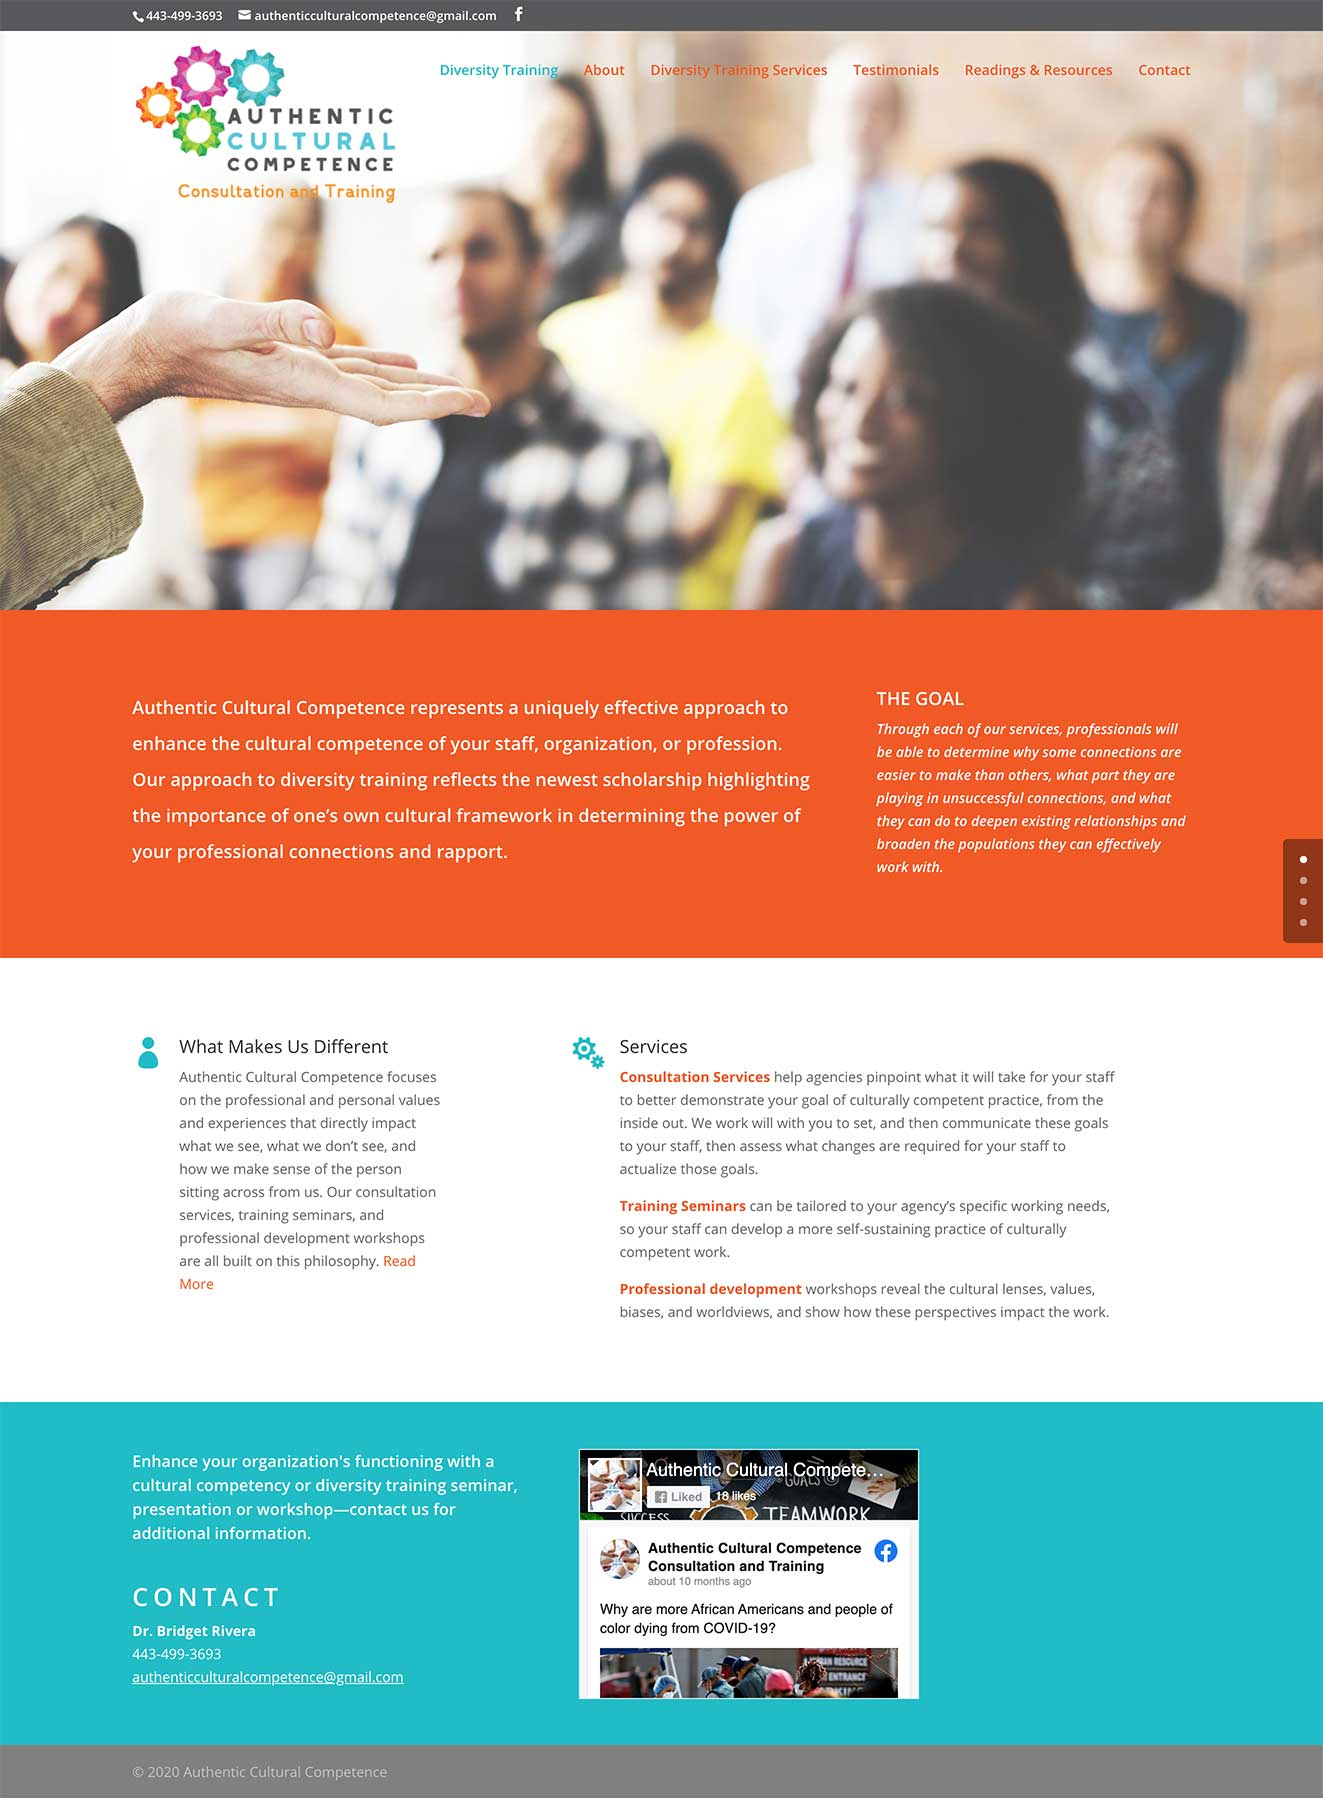 Responsive Website Design for Authentic Cultural Competence